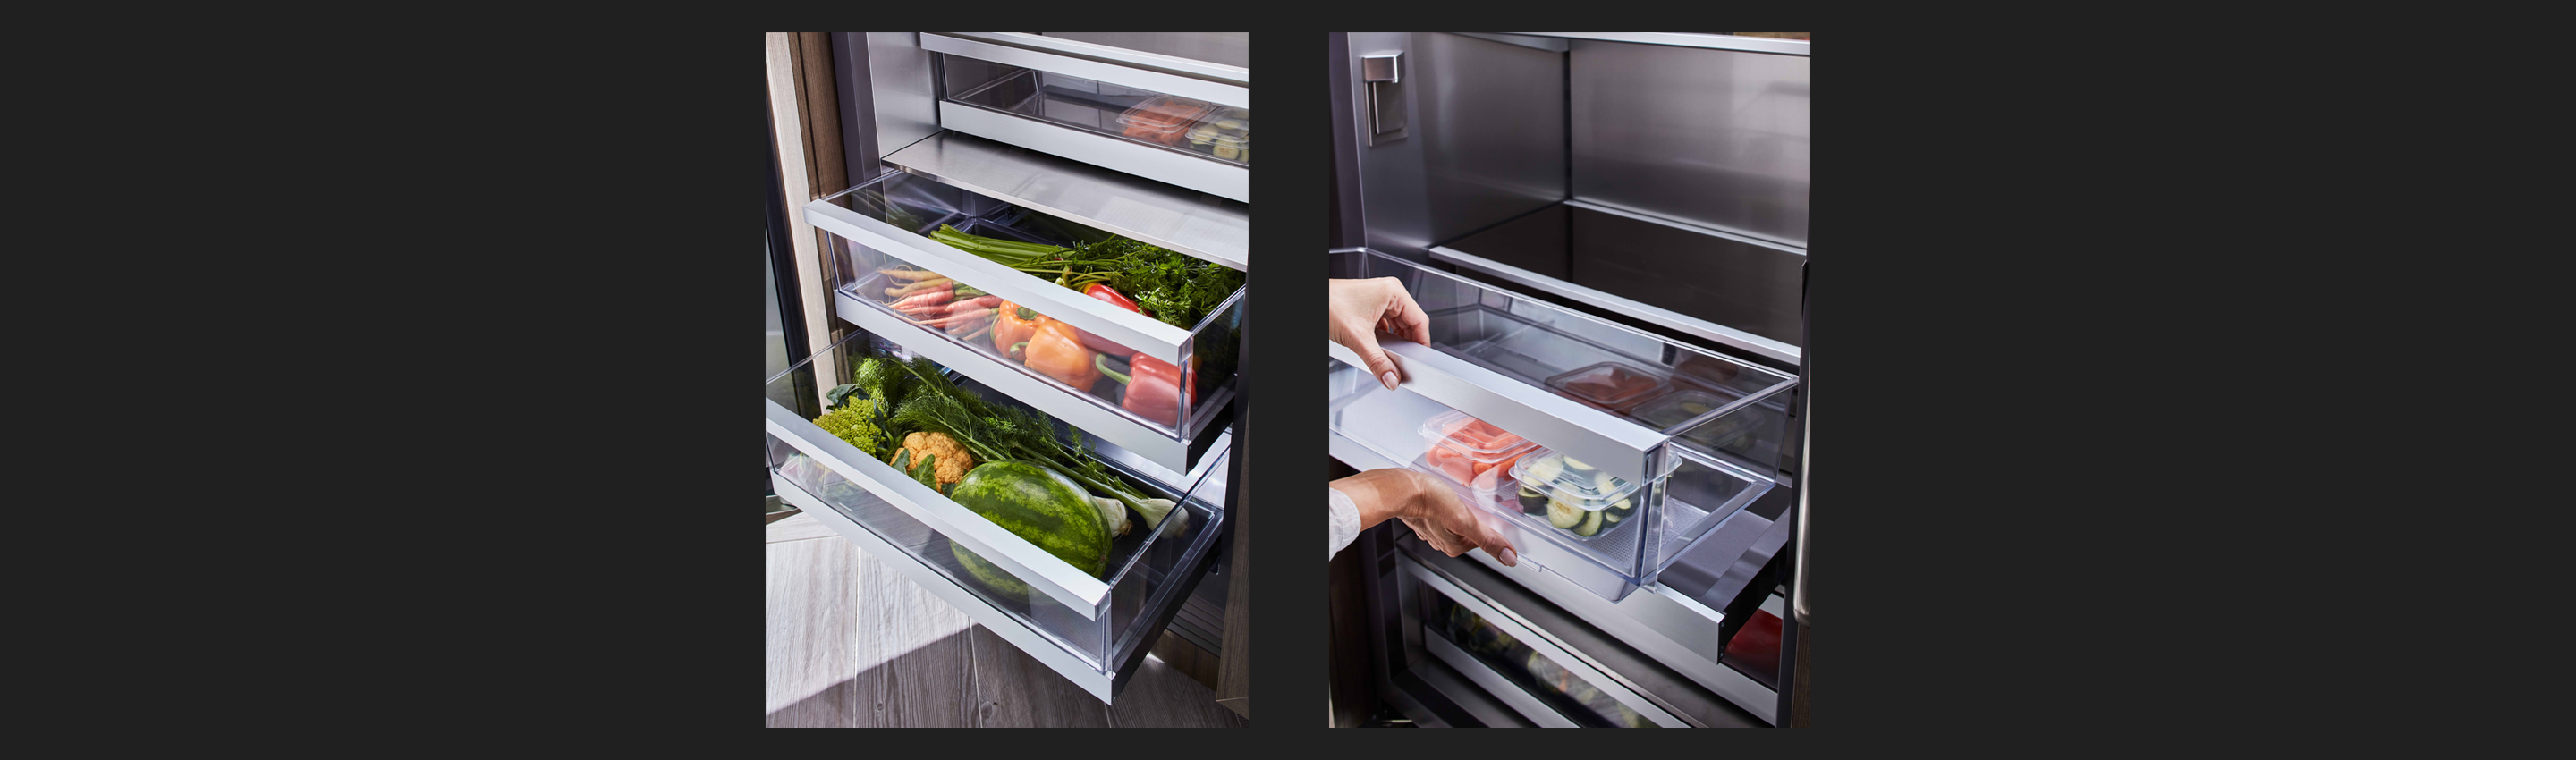 30 Quot Integrated Column Refrigerator Built In Amp Panel Ready